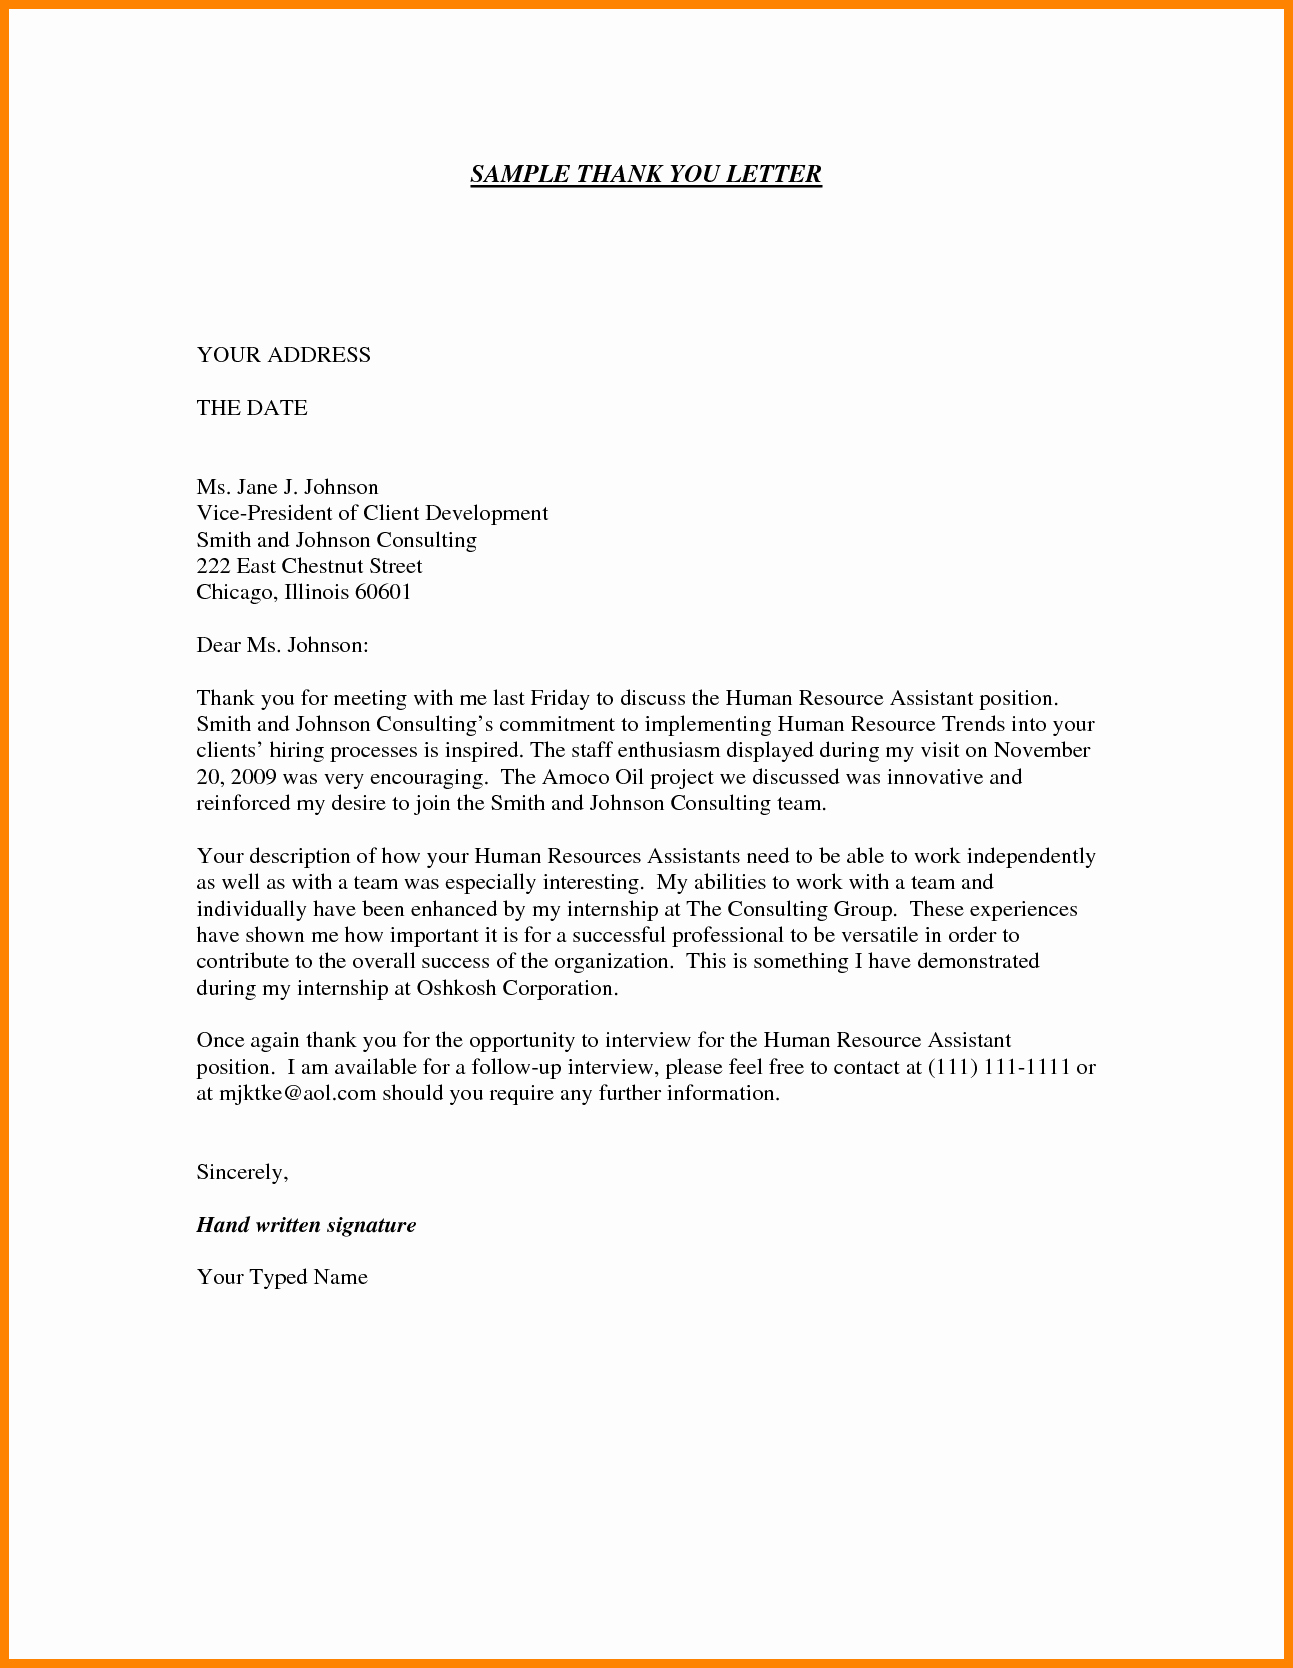 Medical assistant Letter Of Recommendation Awesome 5 Cover Letter for Medical assistant